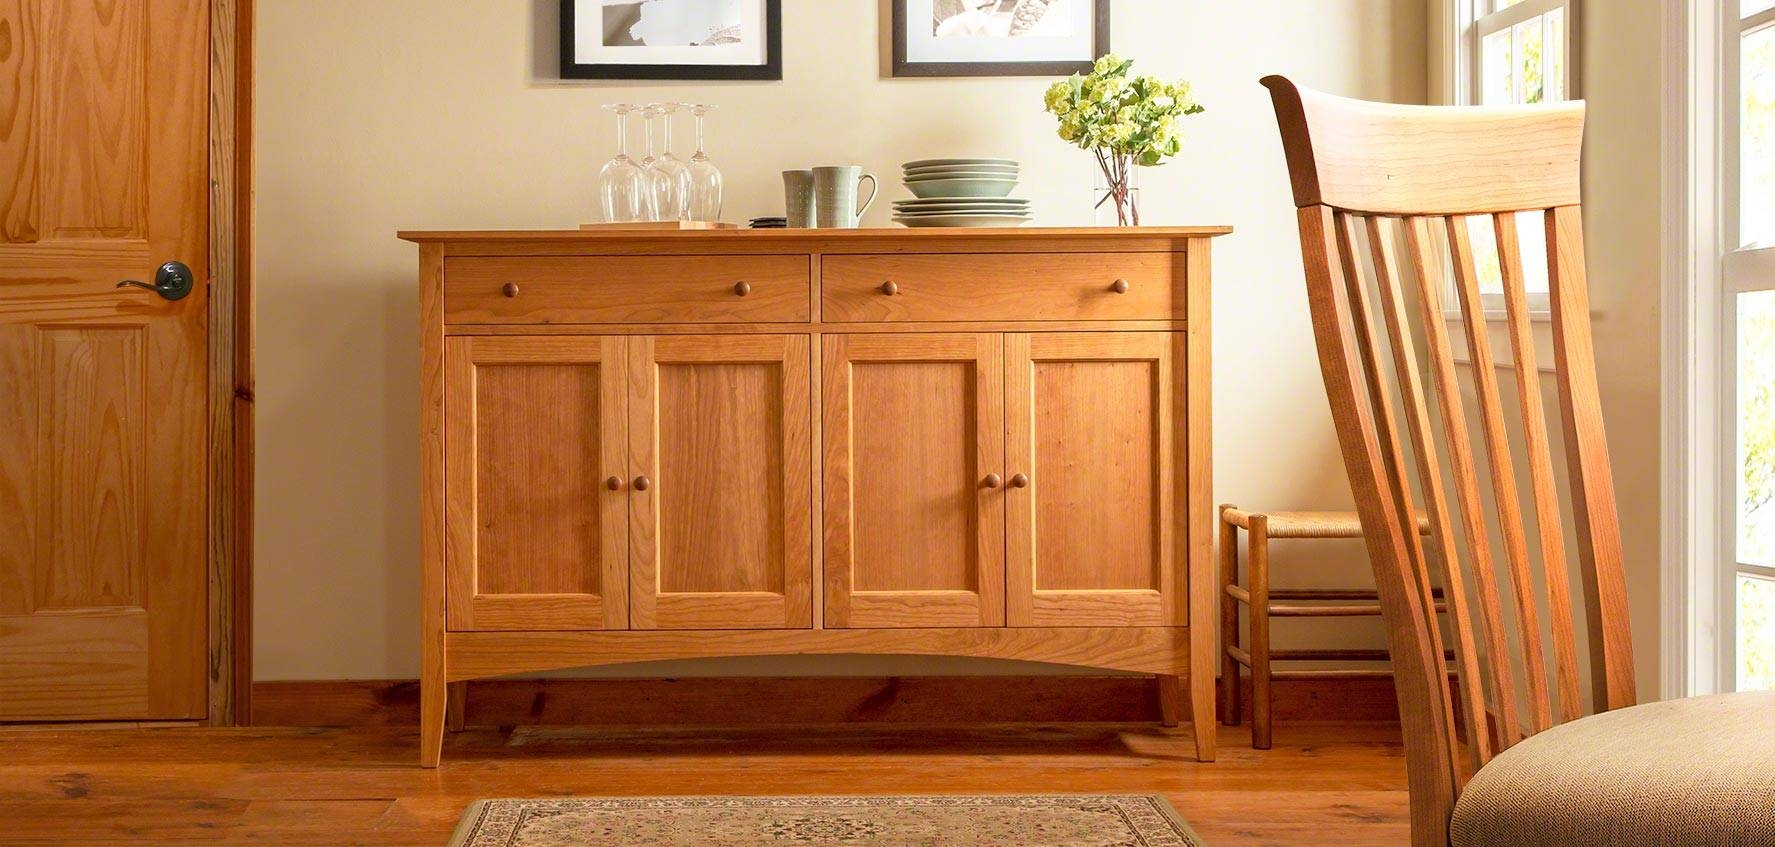 Solid Wood Sideboards, Buffets, & Hutches - Vermont Woods Studios intended for Real Wood Sideboards (Image 27 of 30)